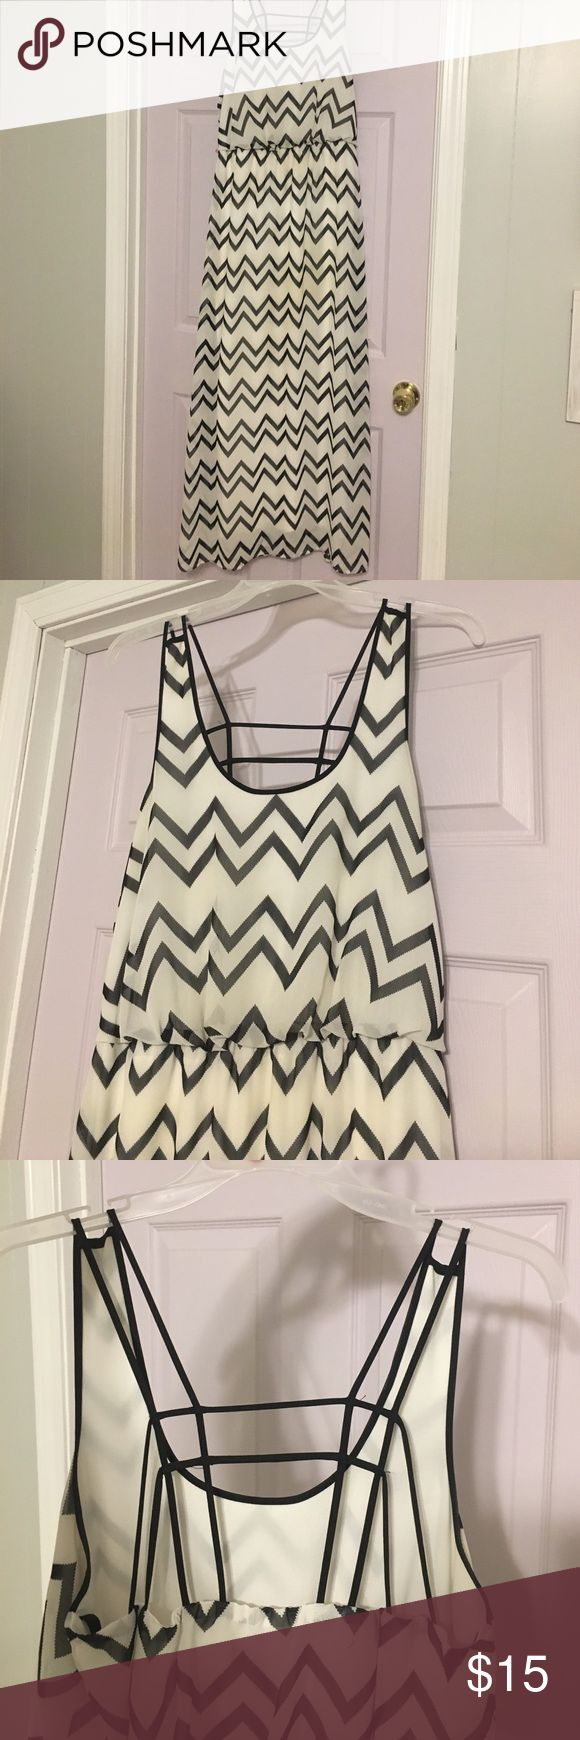 Black and White Chevron Maxi Dress This cute black and white chevron maxi dress is sheer and fully lined! The back is open with a criss cross detail. It is in good condition! only worn a few times, with no stains or tears. It would be the perfect addition to your spring or summer wardrobe! City Triangles Dresses Maxi